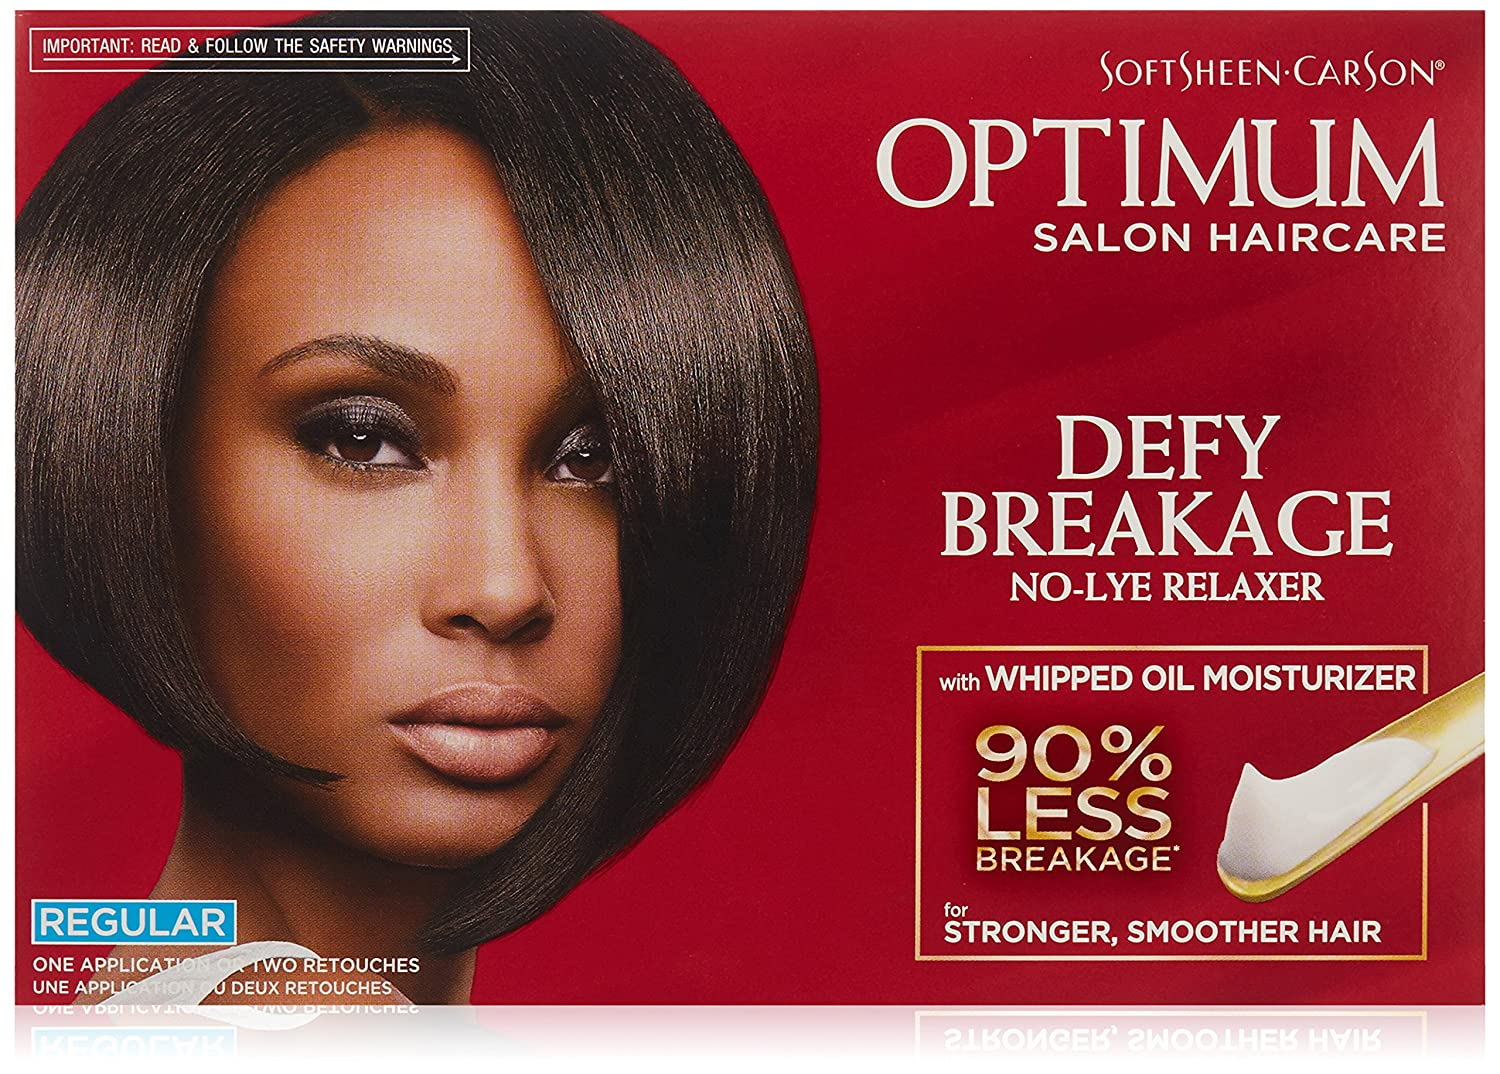 Optimum Care by SoftSheen Carson Care Defy Breakage No-lye